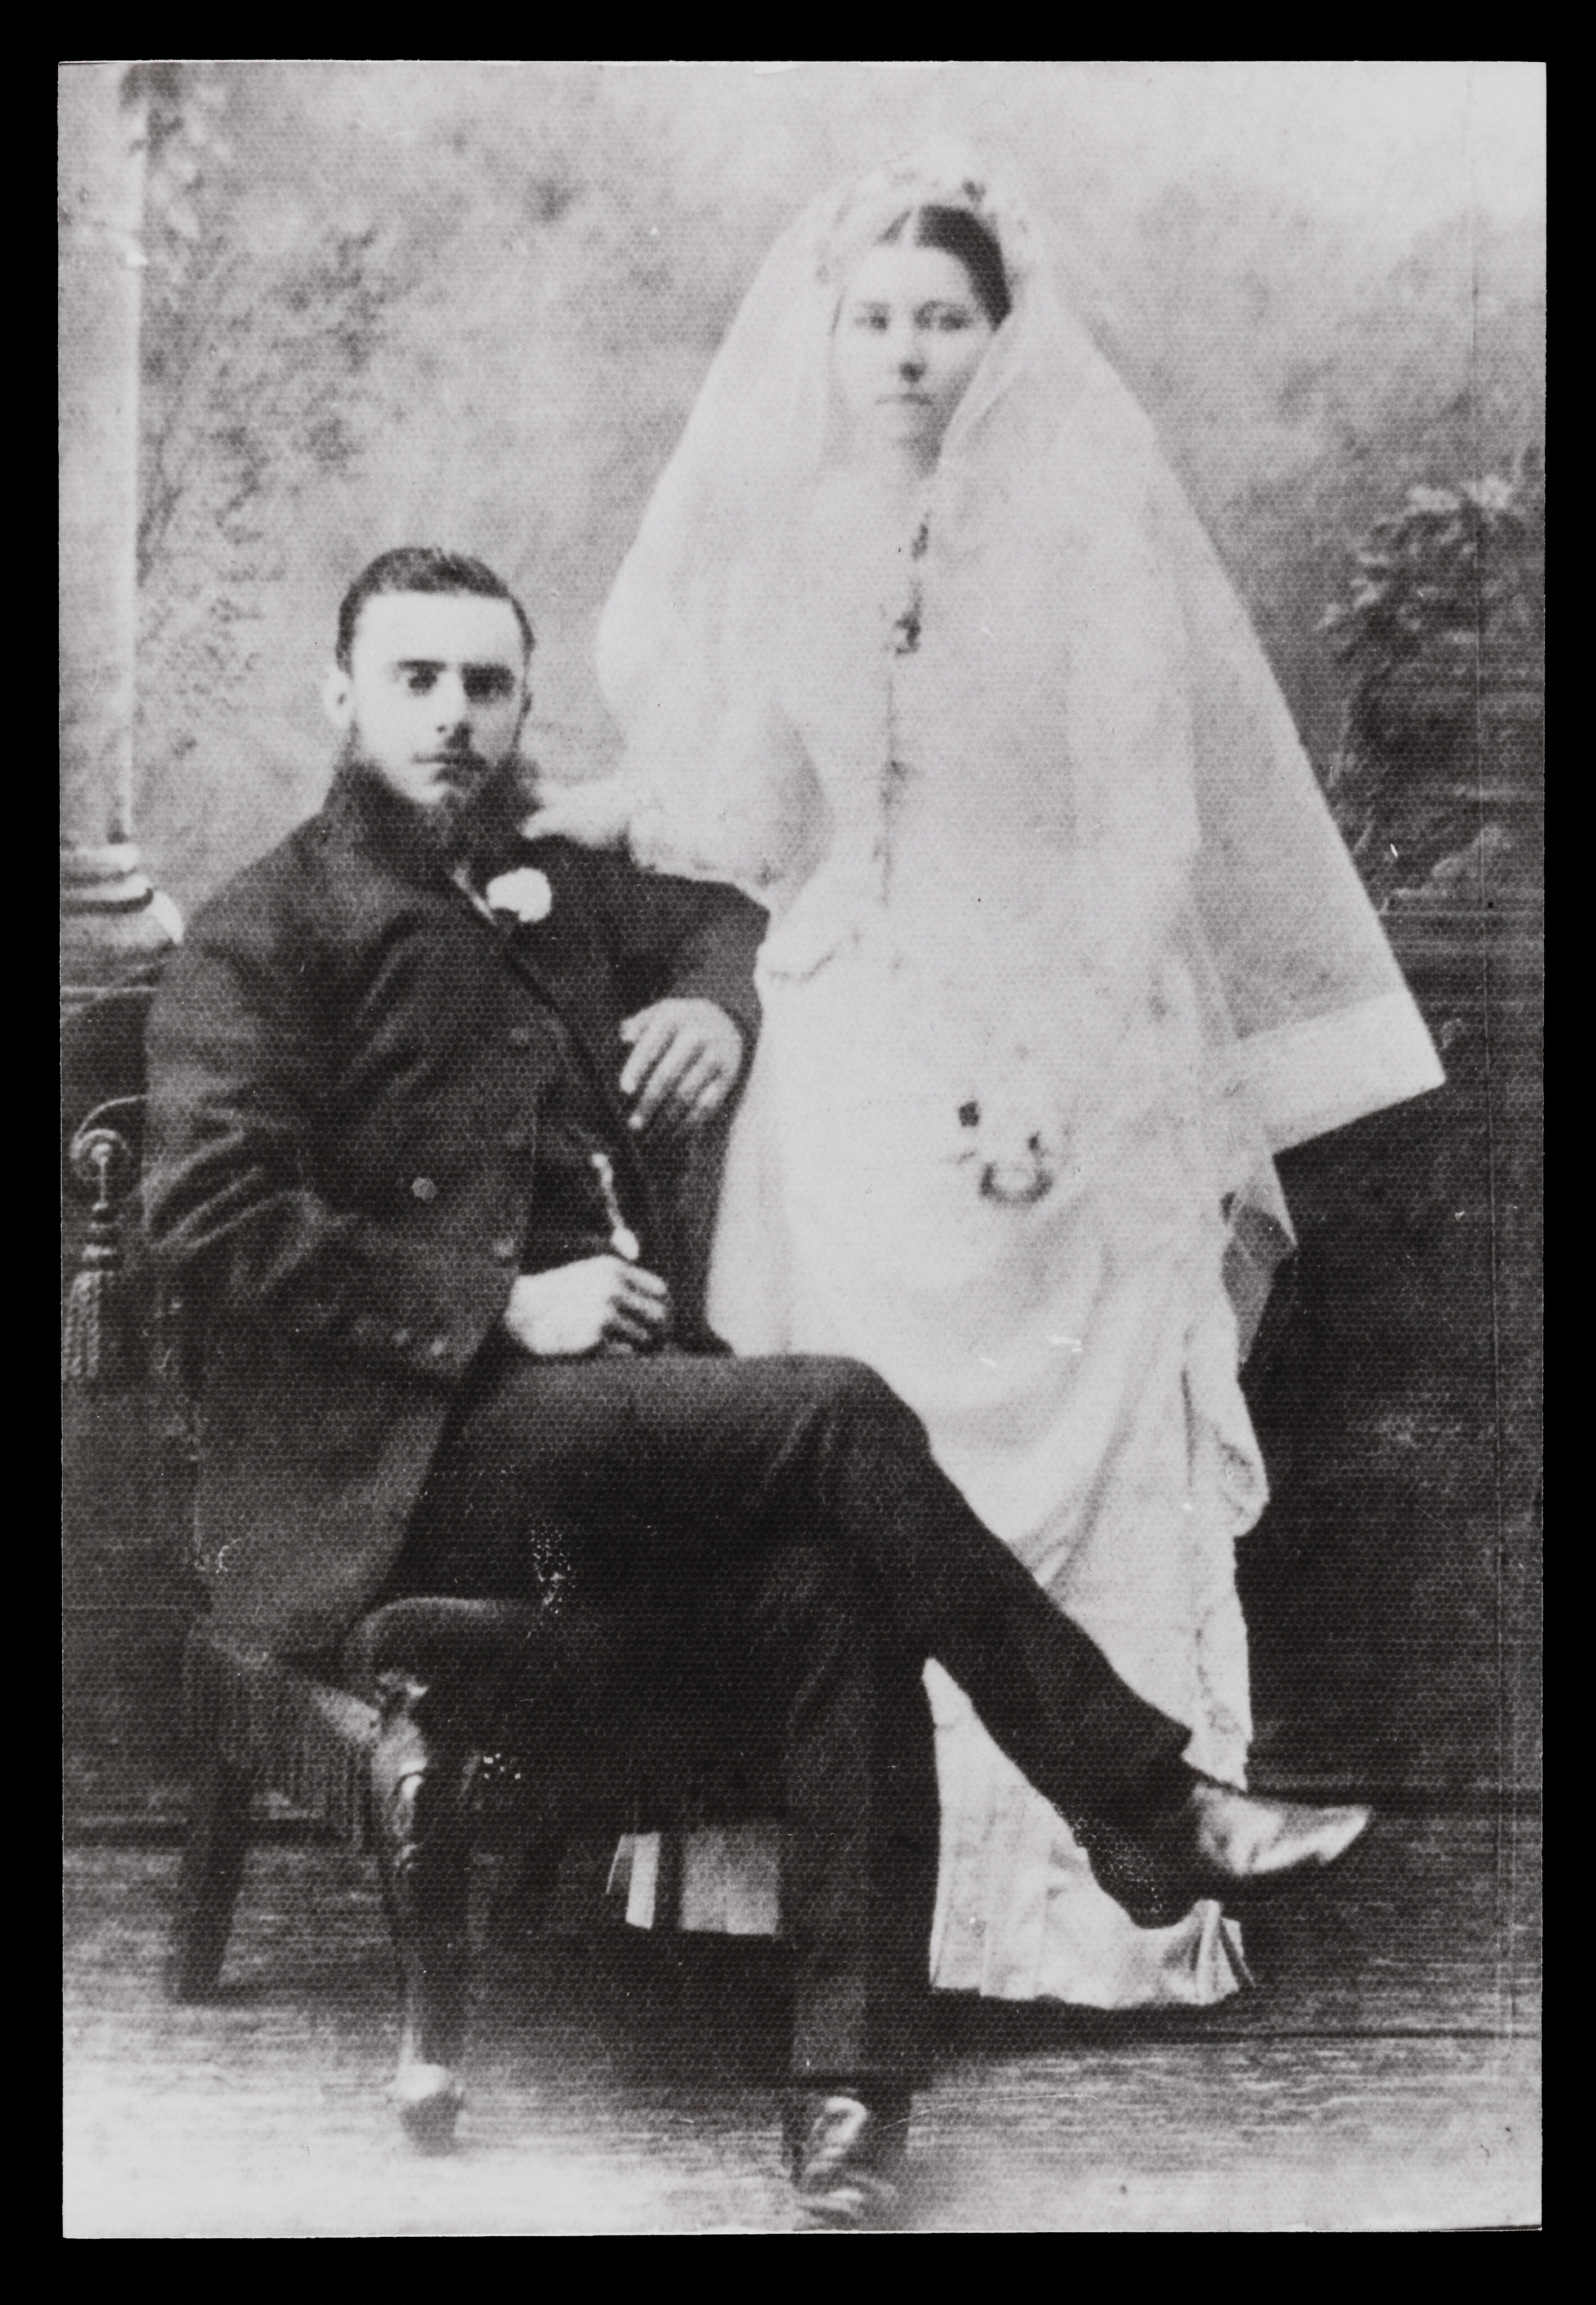 Black and white wedding photograph. The groom is wearing a suit and sitting in a chair, and beside him stands the bride in a white wedding dress and veil.